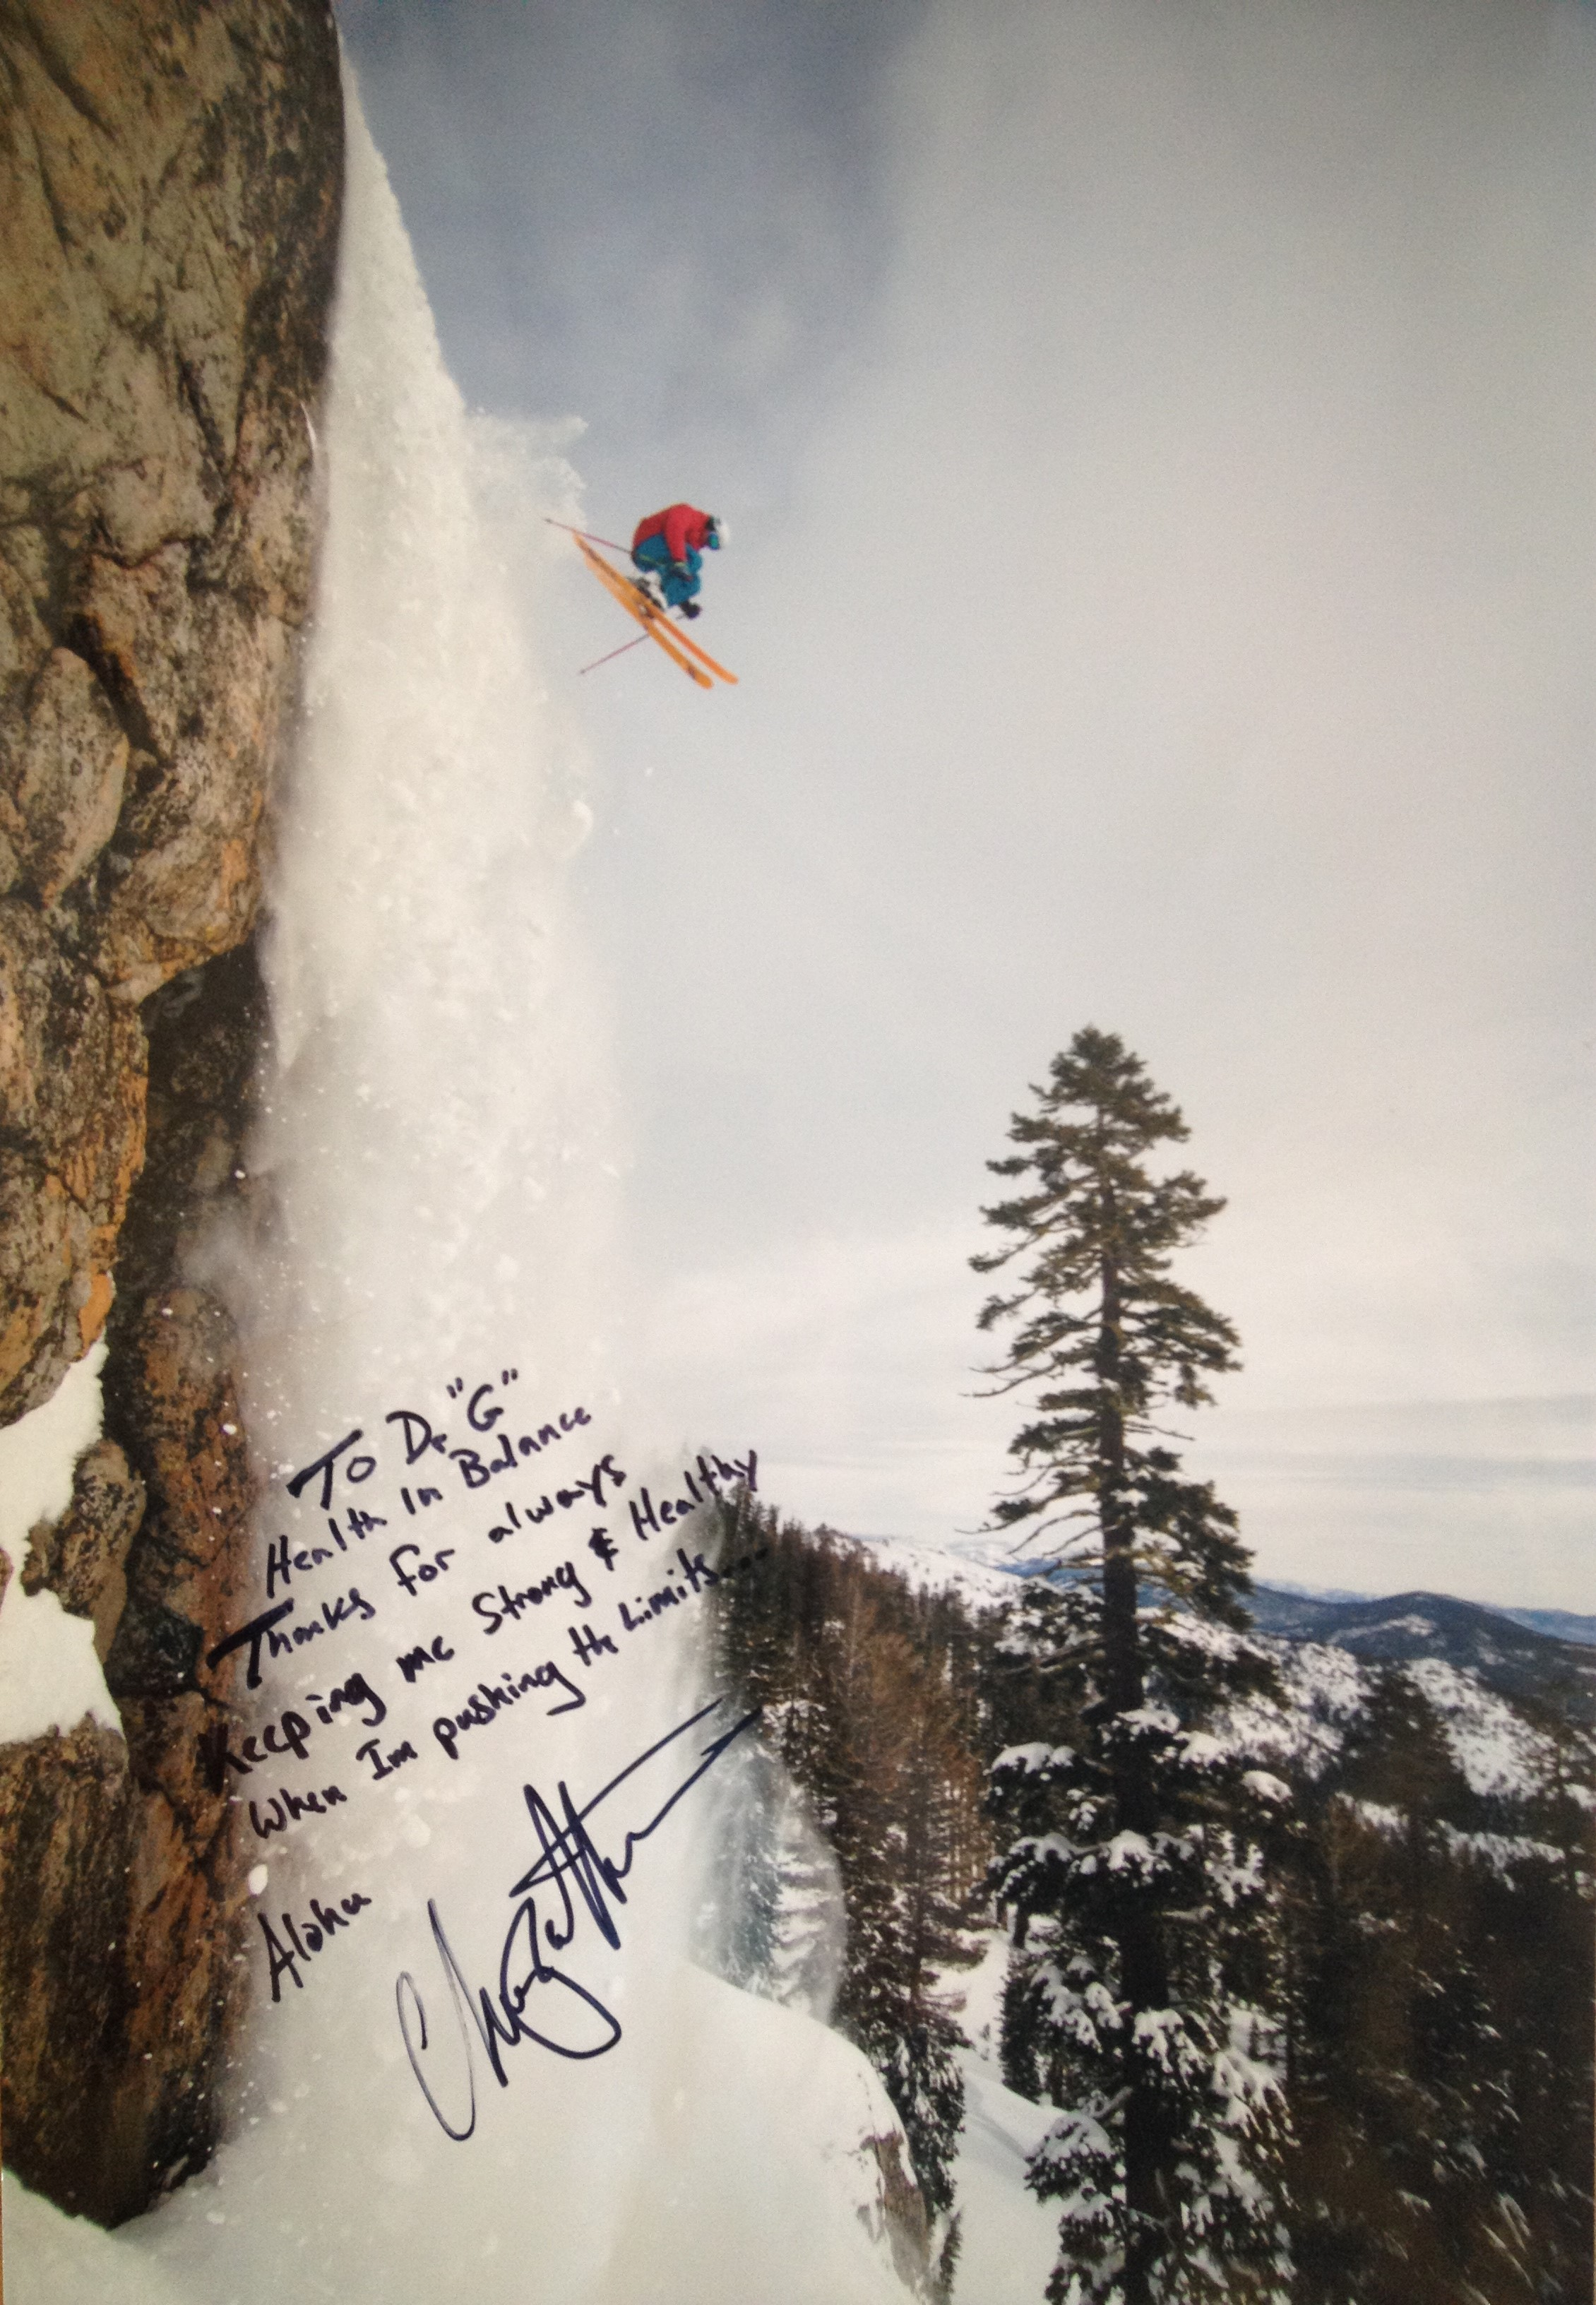 Chuck Patterson- Snowboarding, to Dr. G.JPG